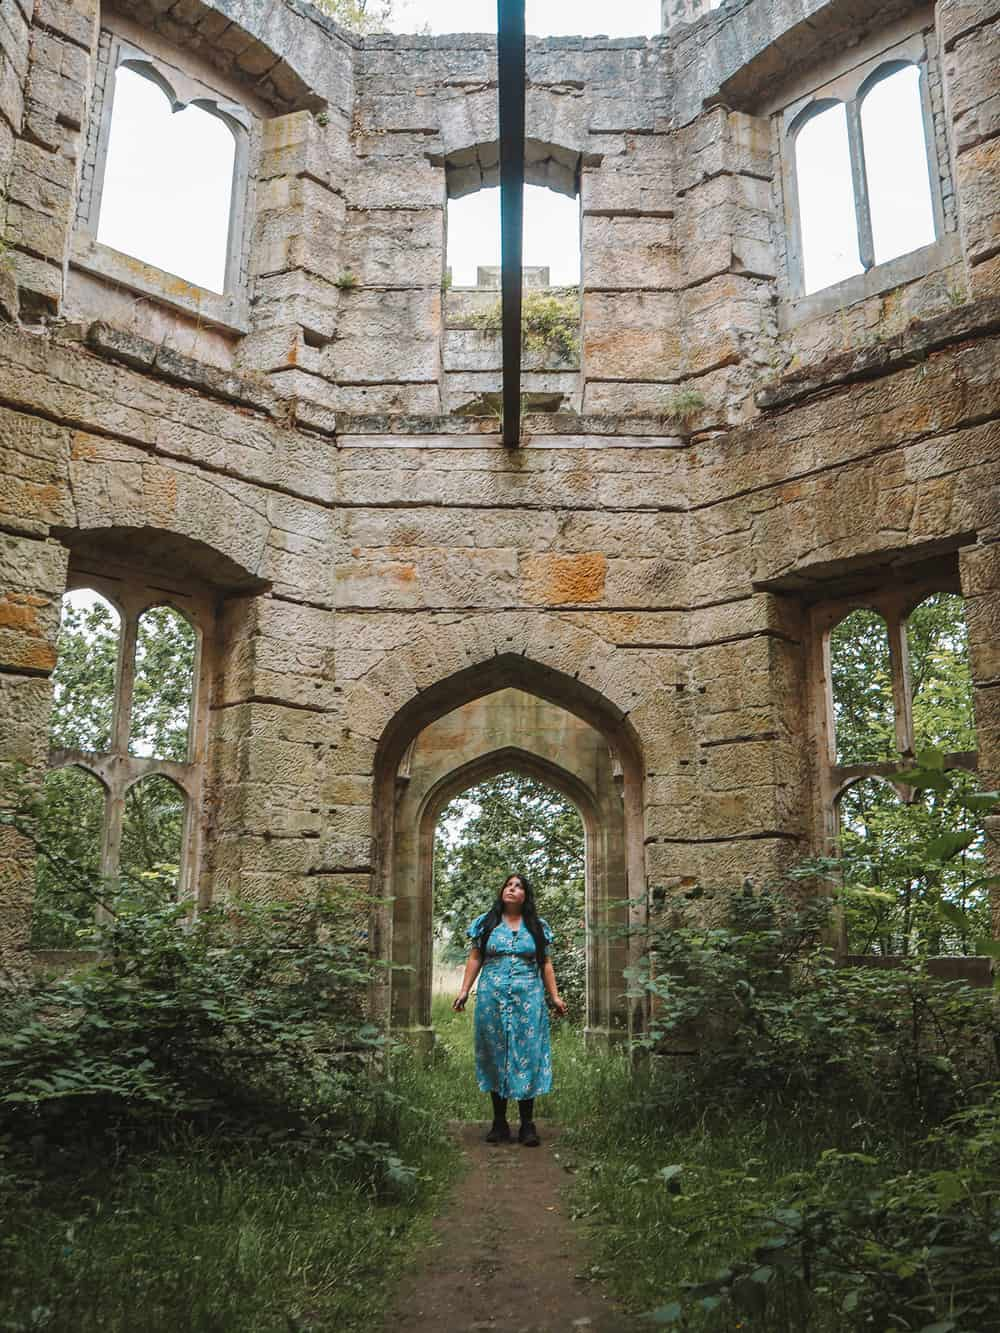 How to find Dunmore House ruins